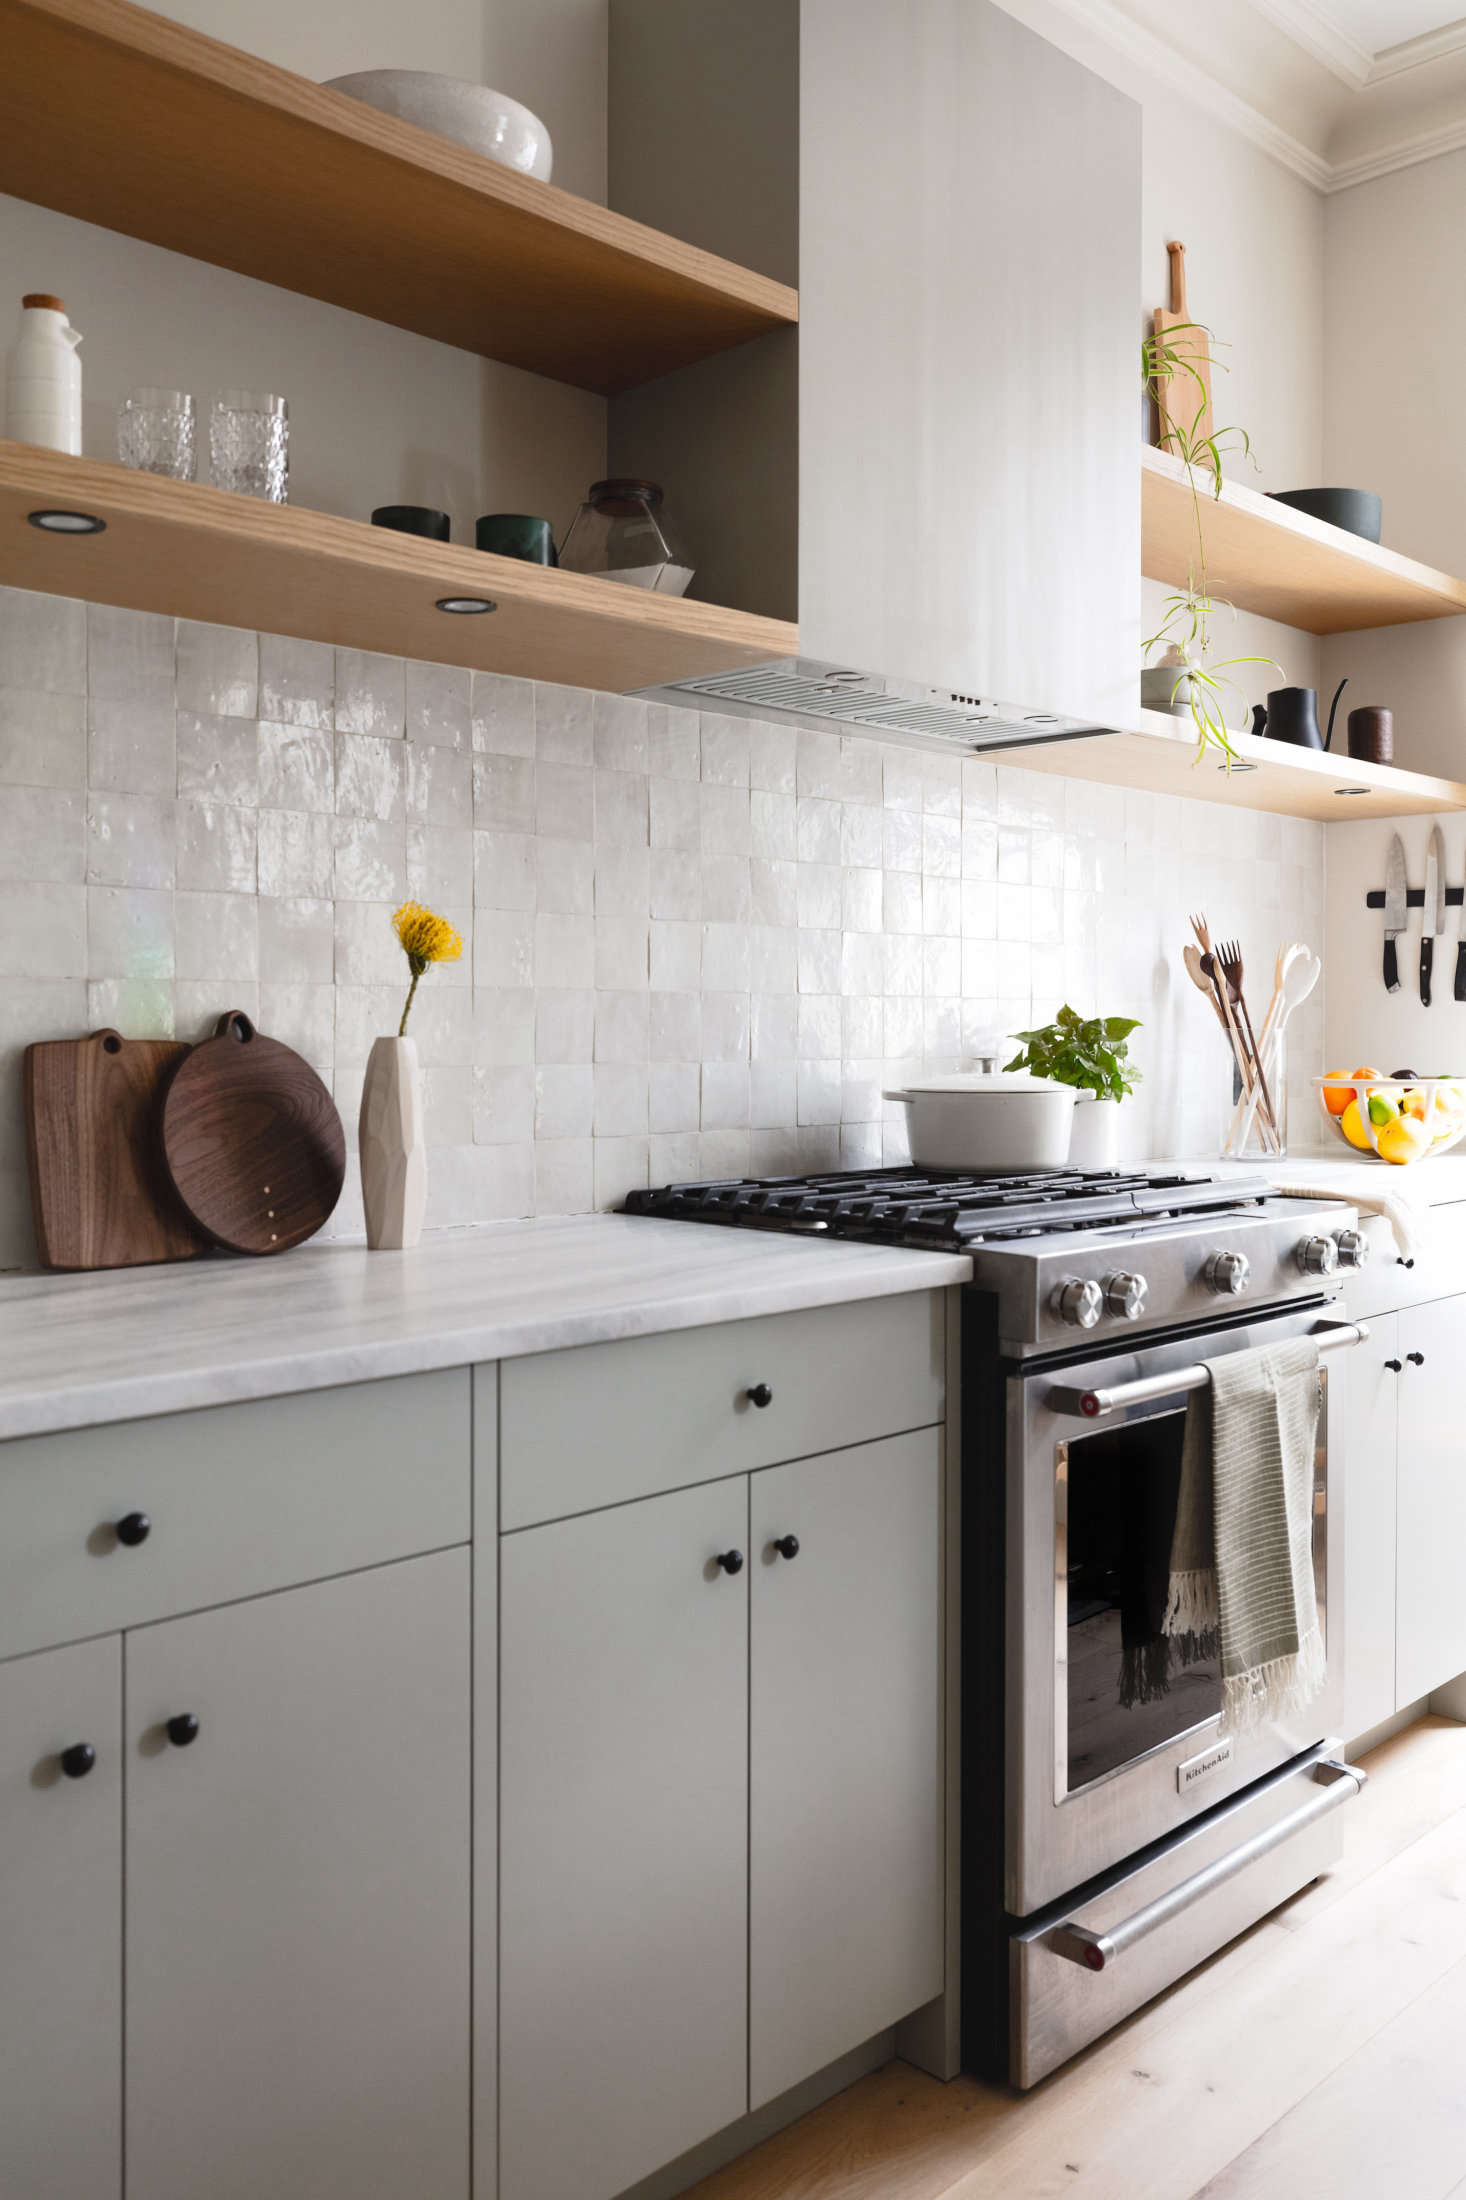 Like the island, the counters are Pentelicus Venato marble. The range is a KitchenAid. Note the gracefully incorporated ventilation hood and under-the-shelf puck lighting—&#8